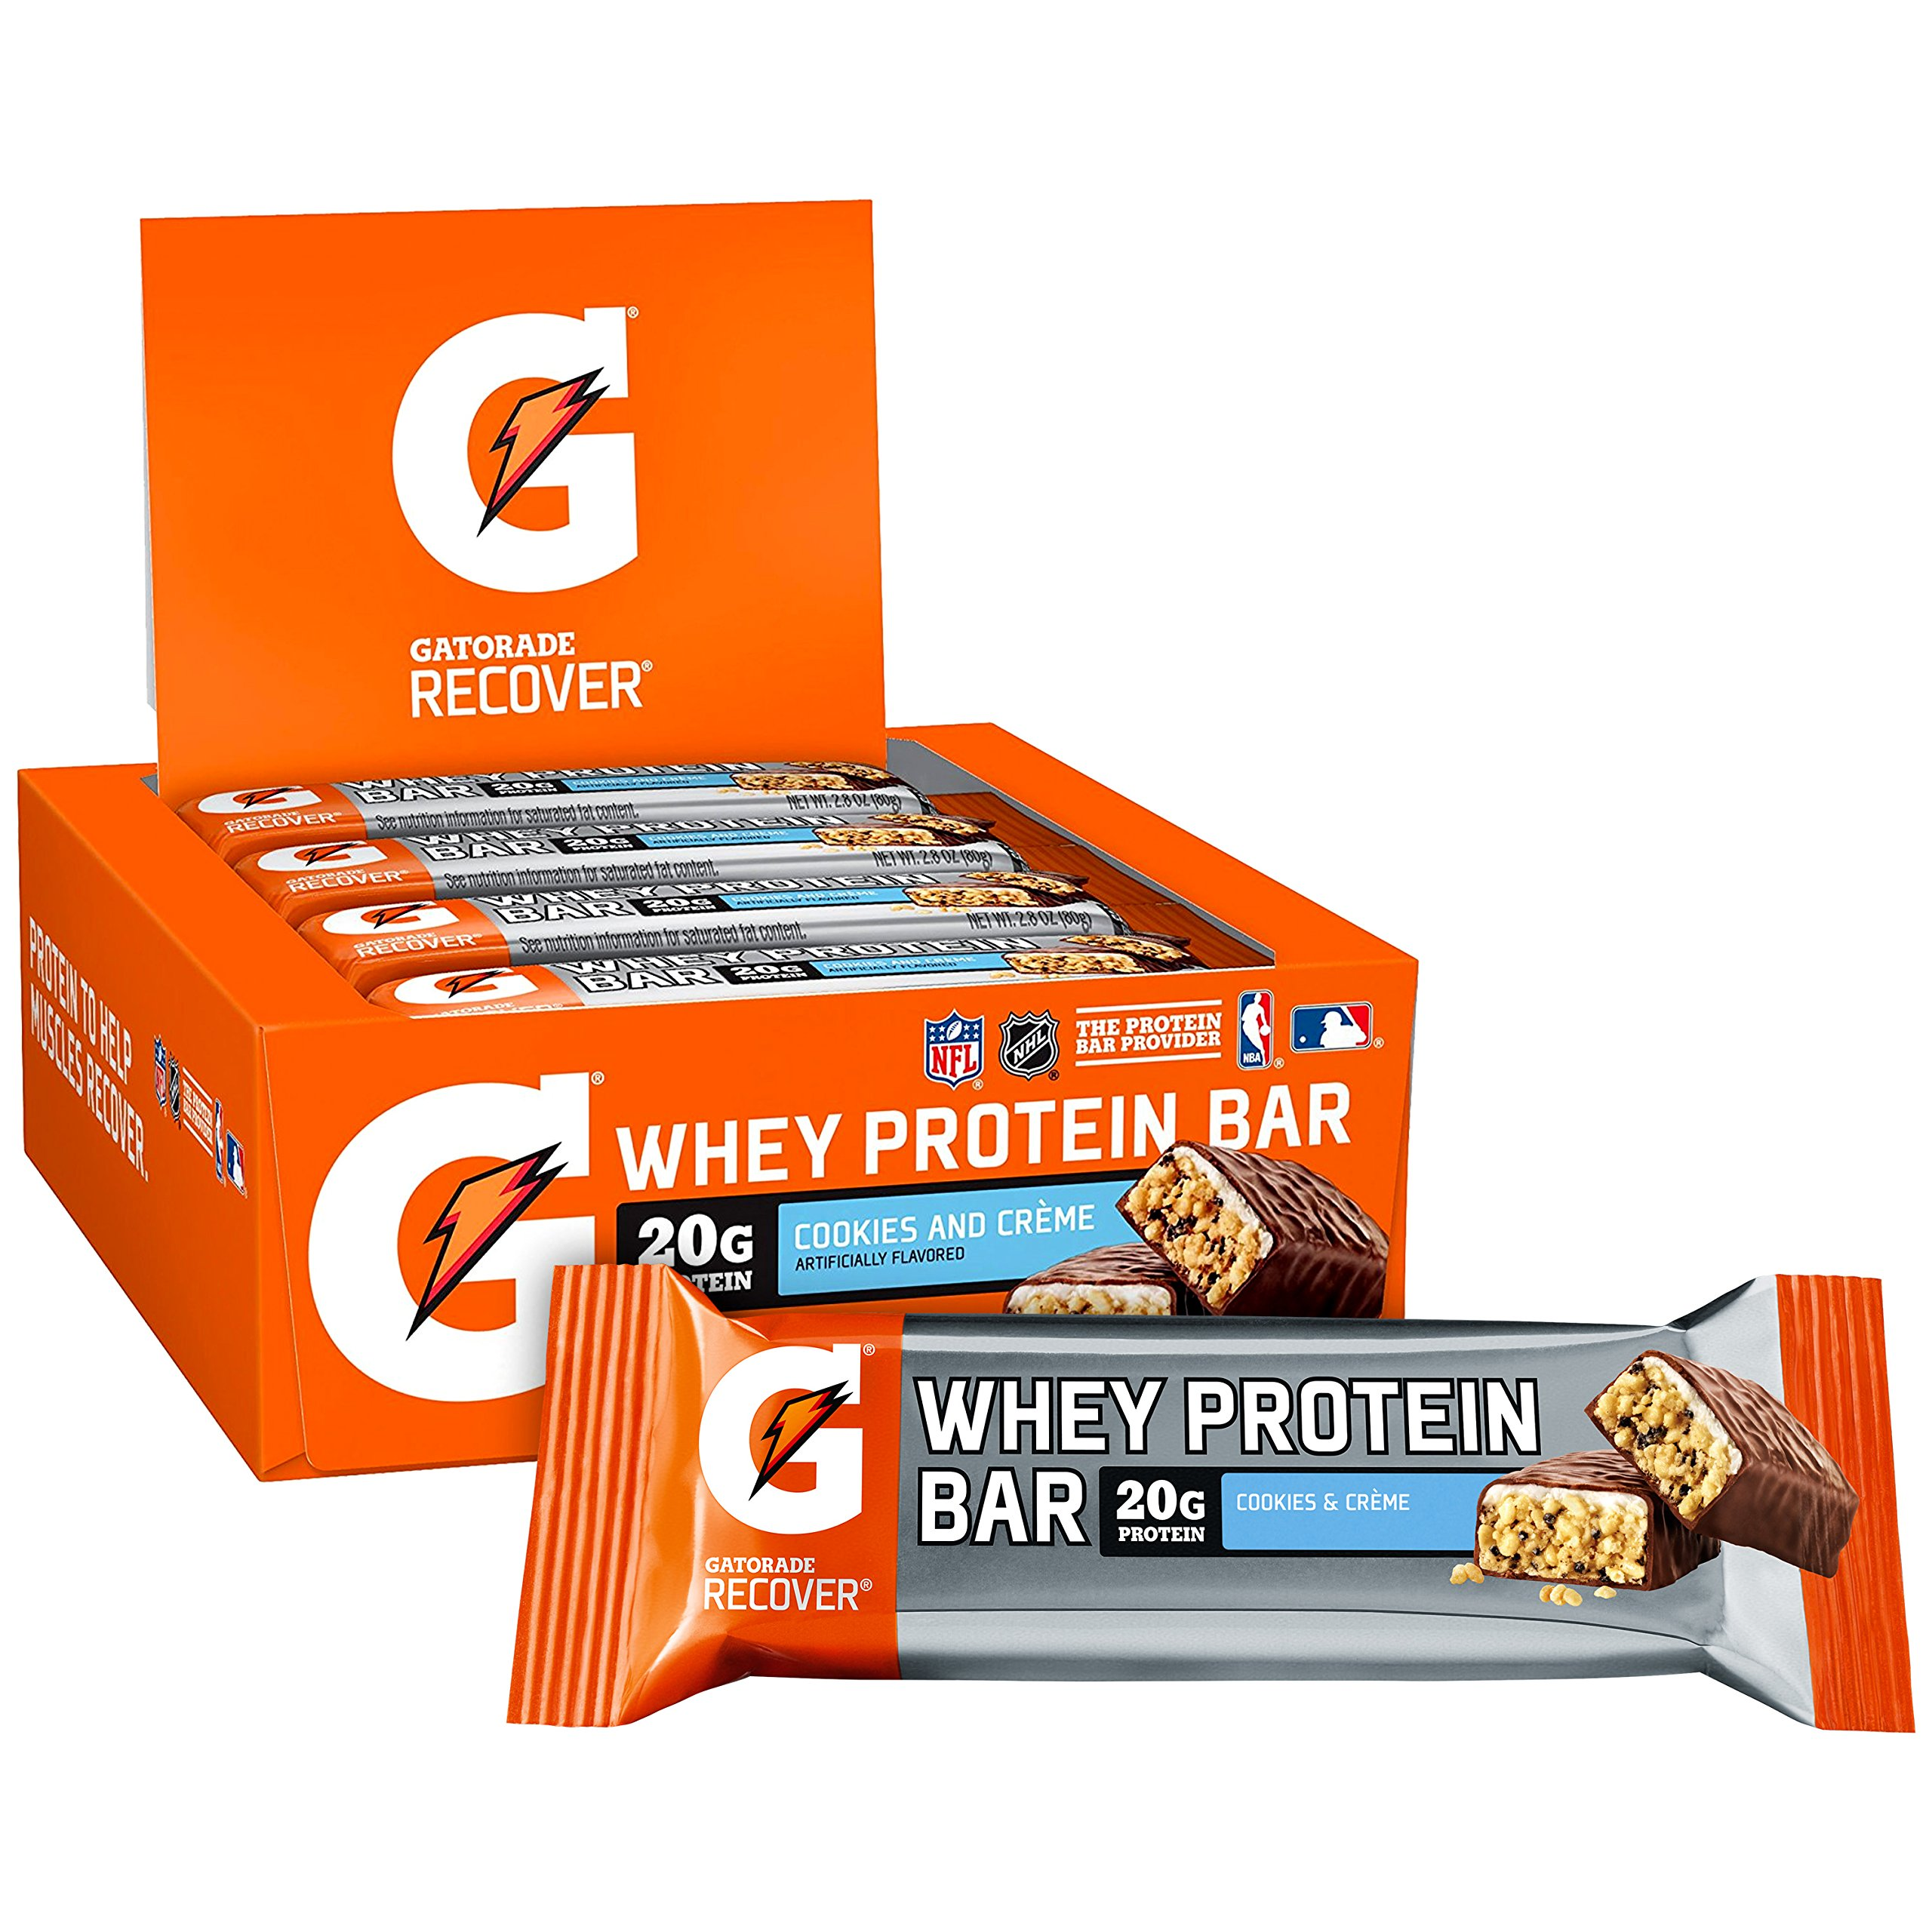 Gatorade Protein Cookies Cr%C3%A8me protein